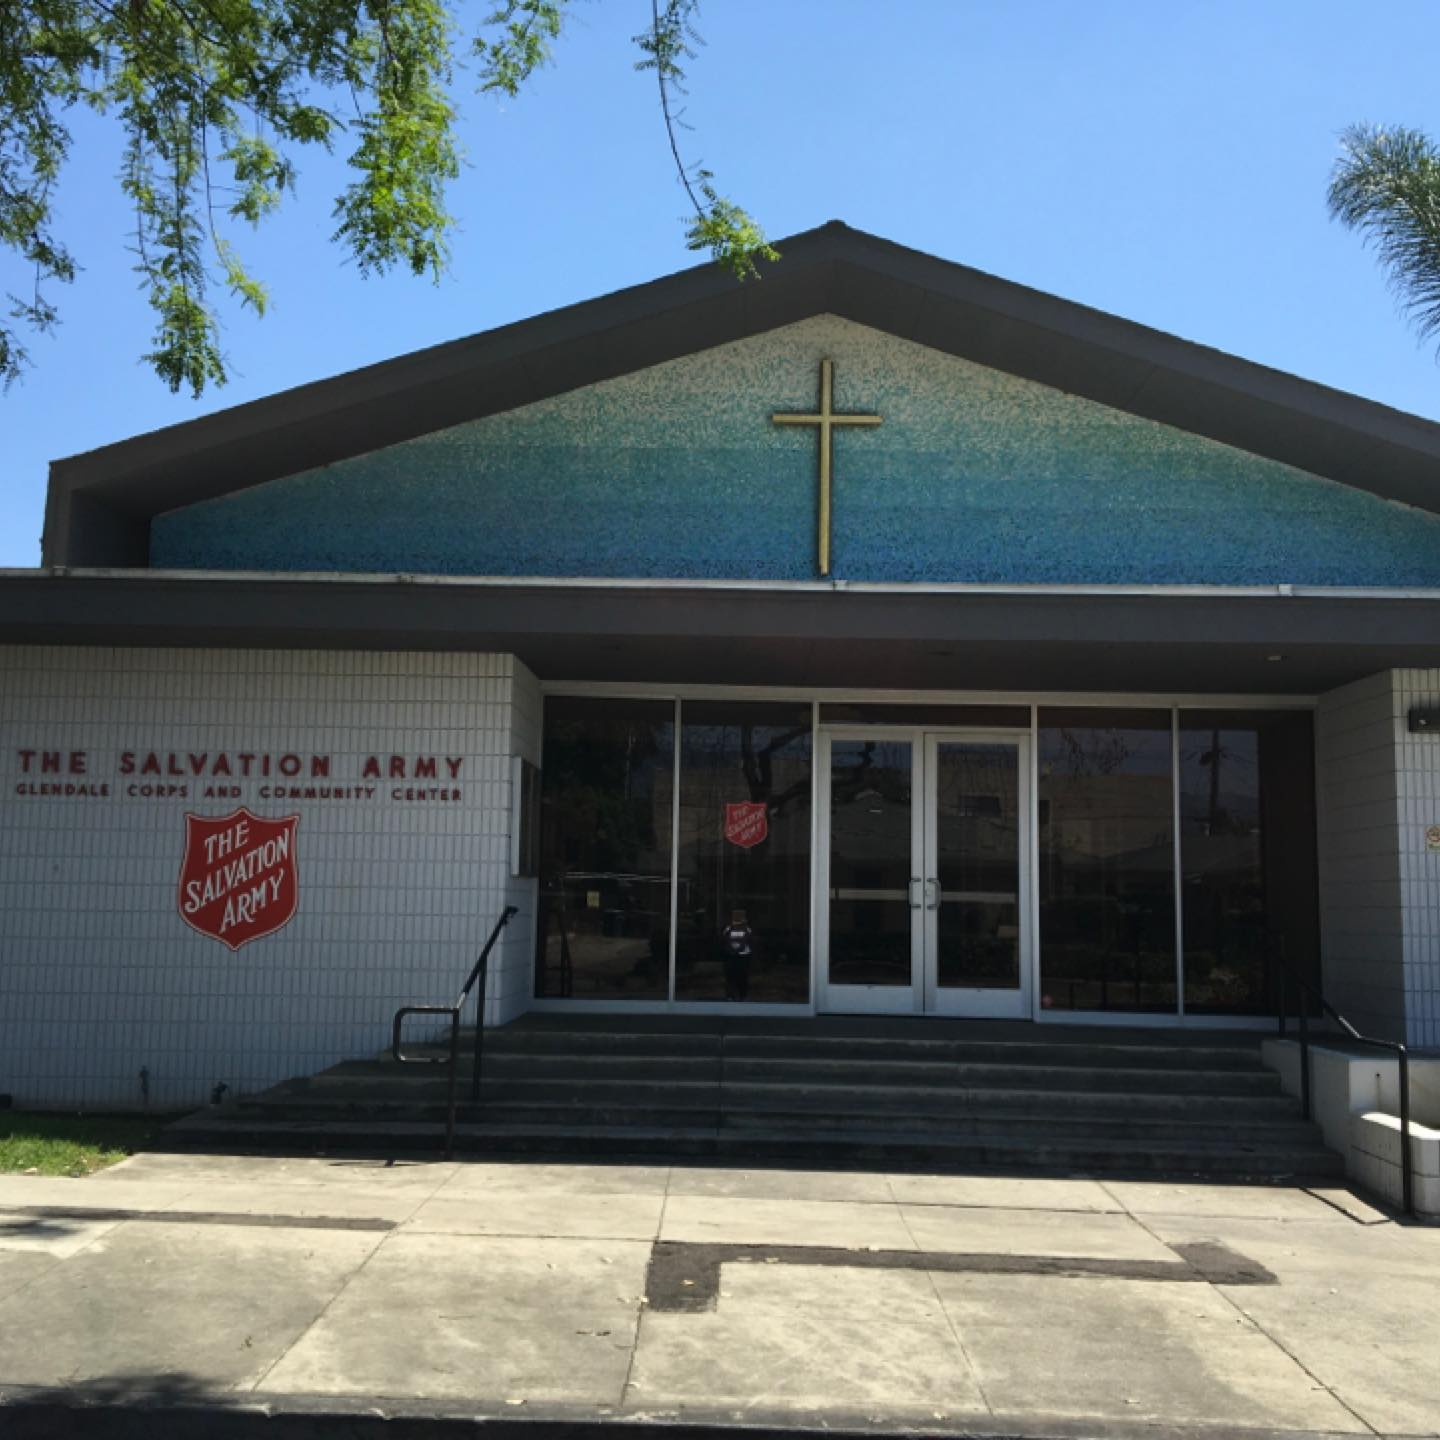 The Salvation Army - People's Choice Market